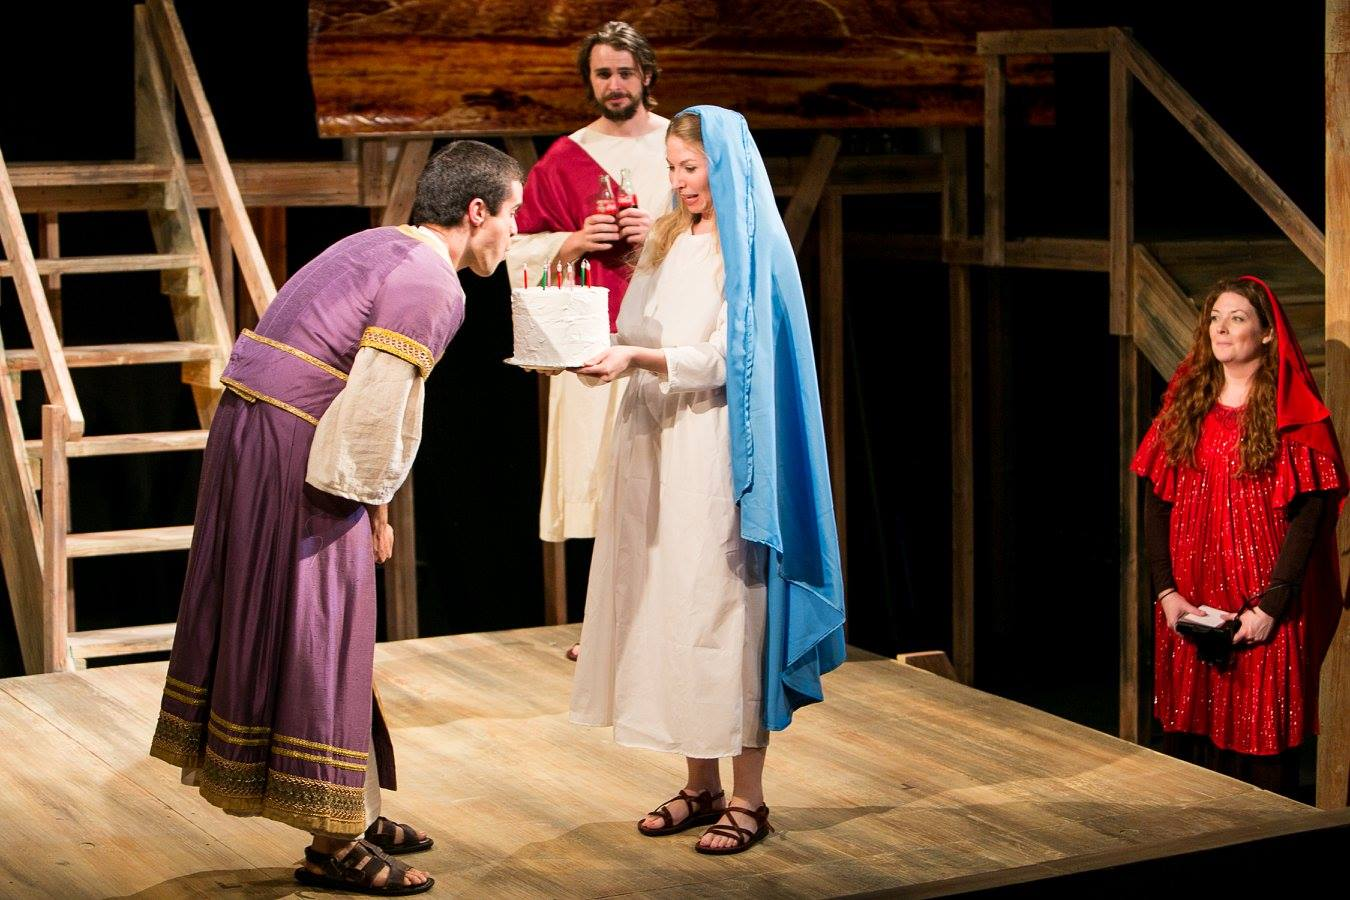 P (Pontius), J (Jesus), Mary 1 (Virgin Mary), and Mary 2 (Mary Magdalene) from Act 3 of Sarah Ruhl's Passion Play costume design by Katharine Tarkulich